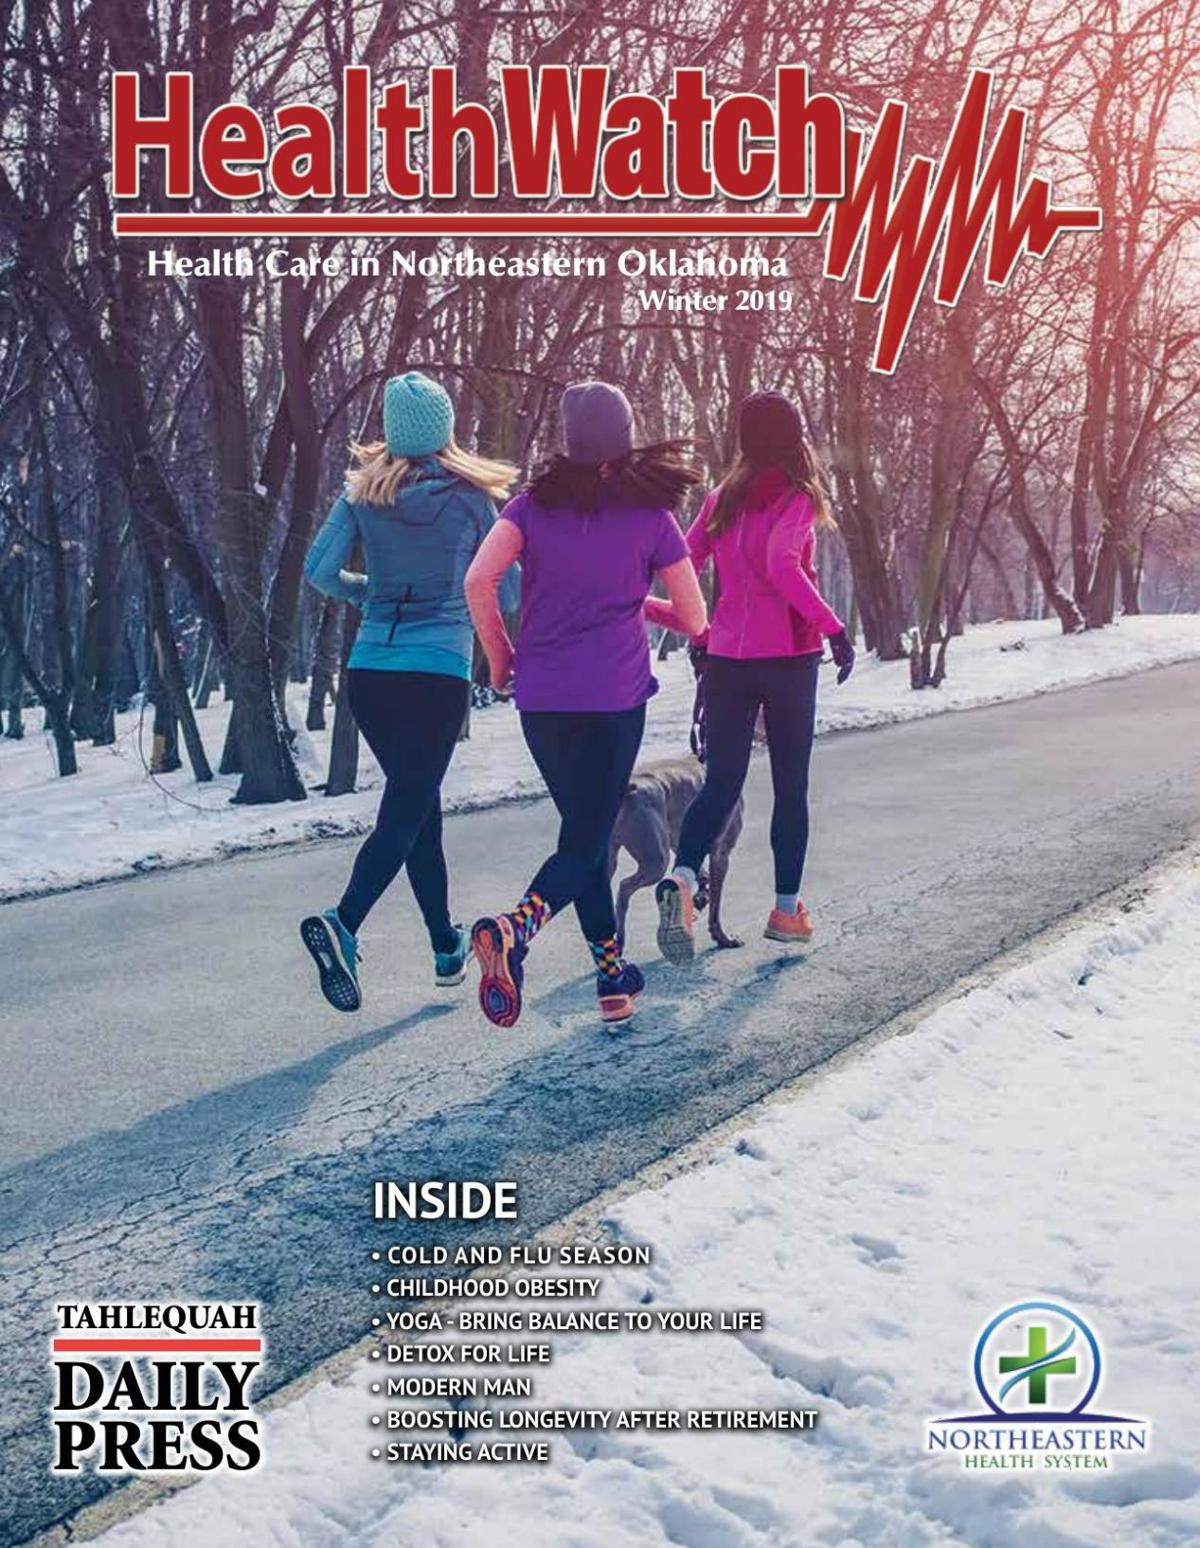 HealthWatch Winter 2019-2020